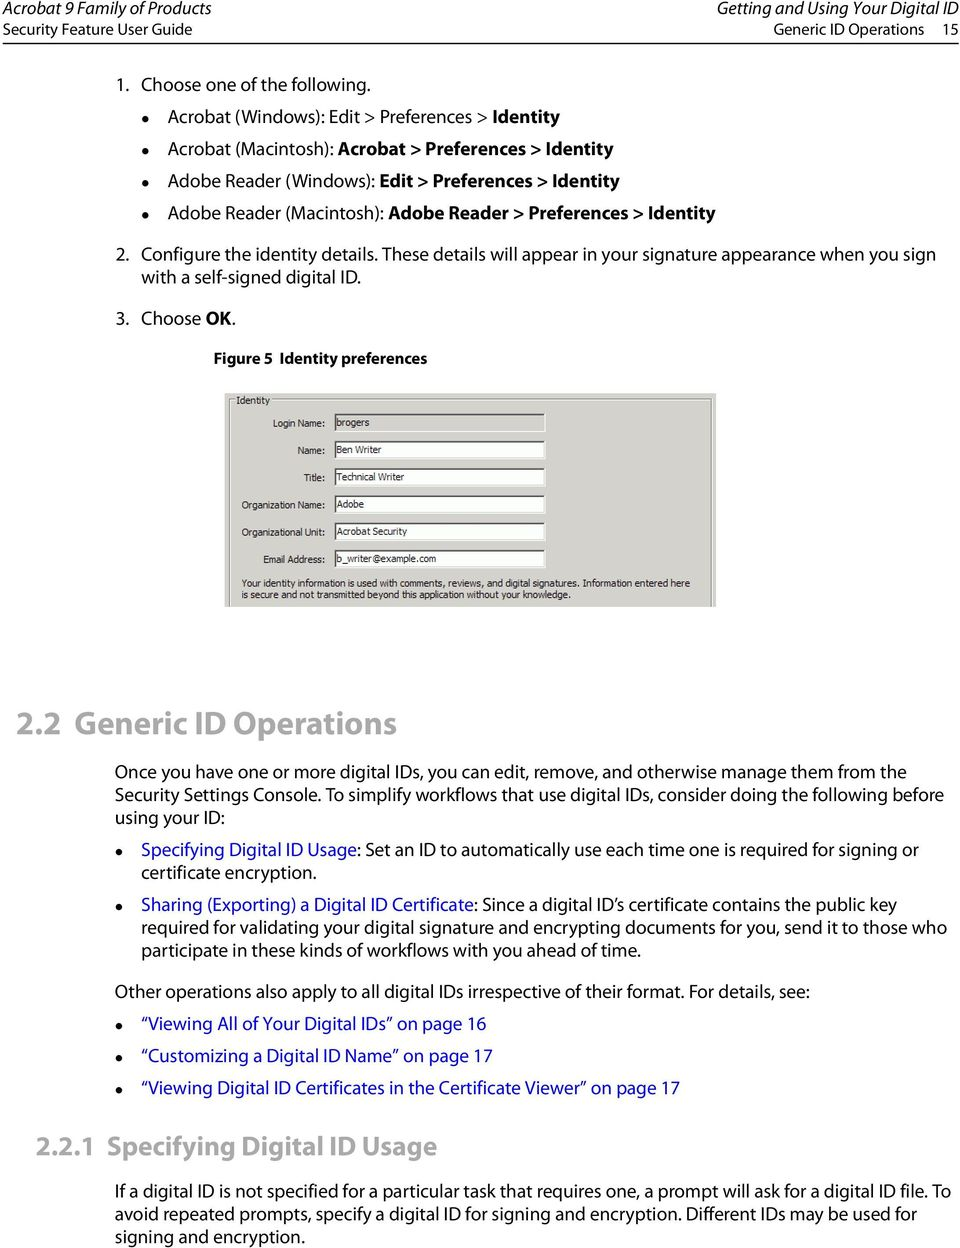 Digital Signature User Guide for Acrobat 9 0 and Adobe